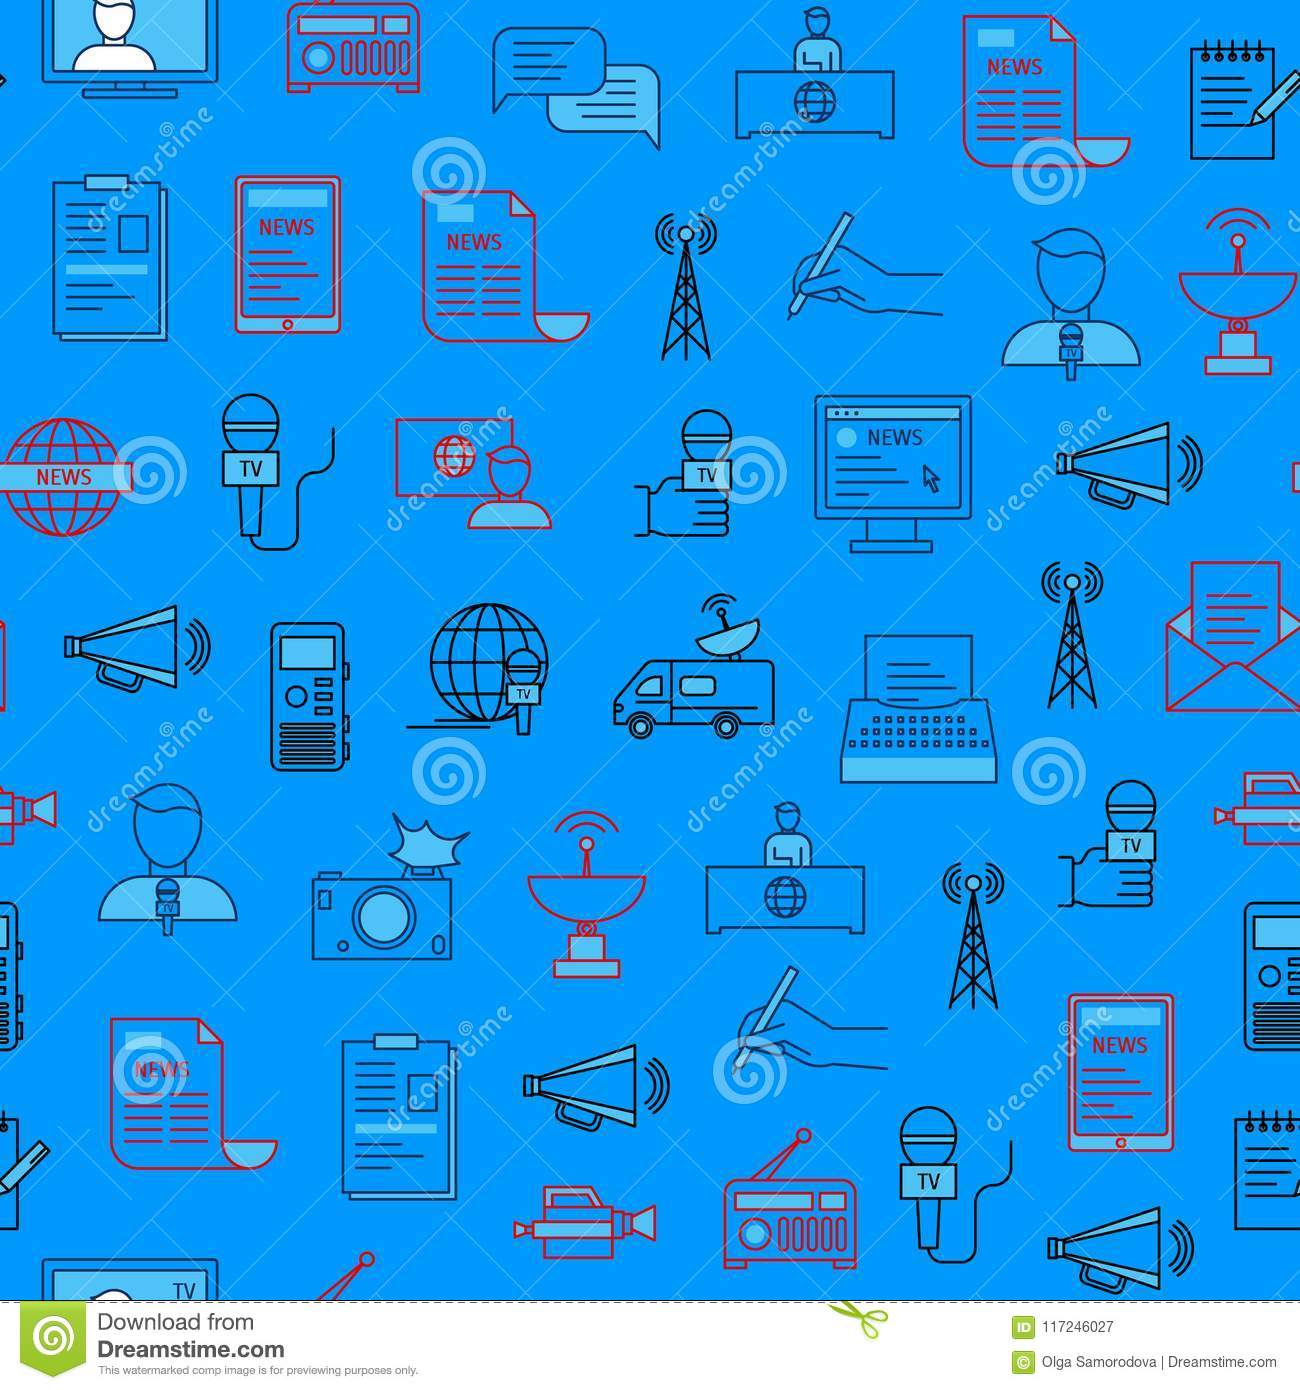 Mass Media and Journalism Seamless Pattern Background. Vector